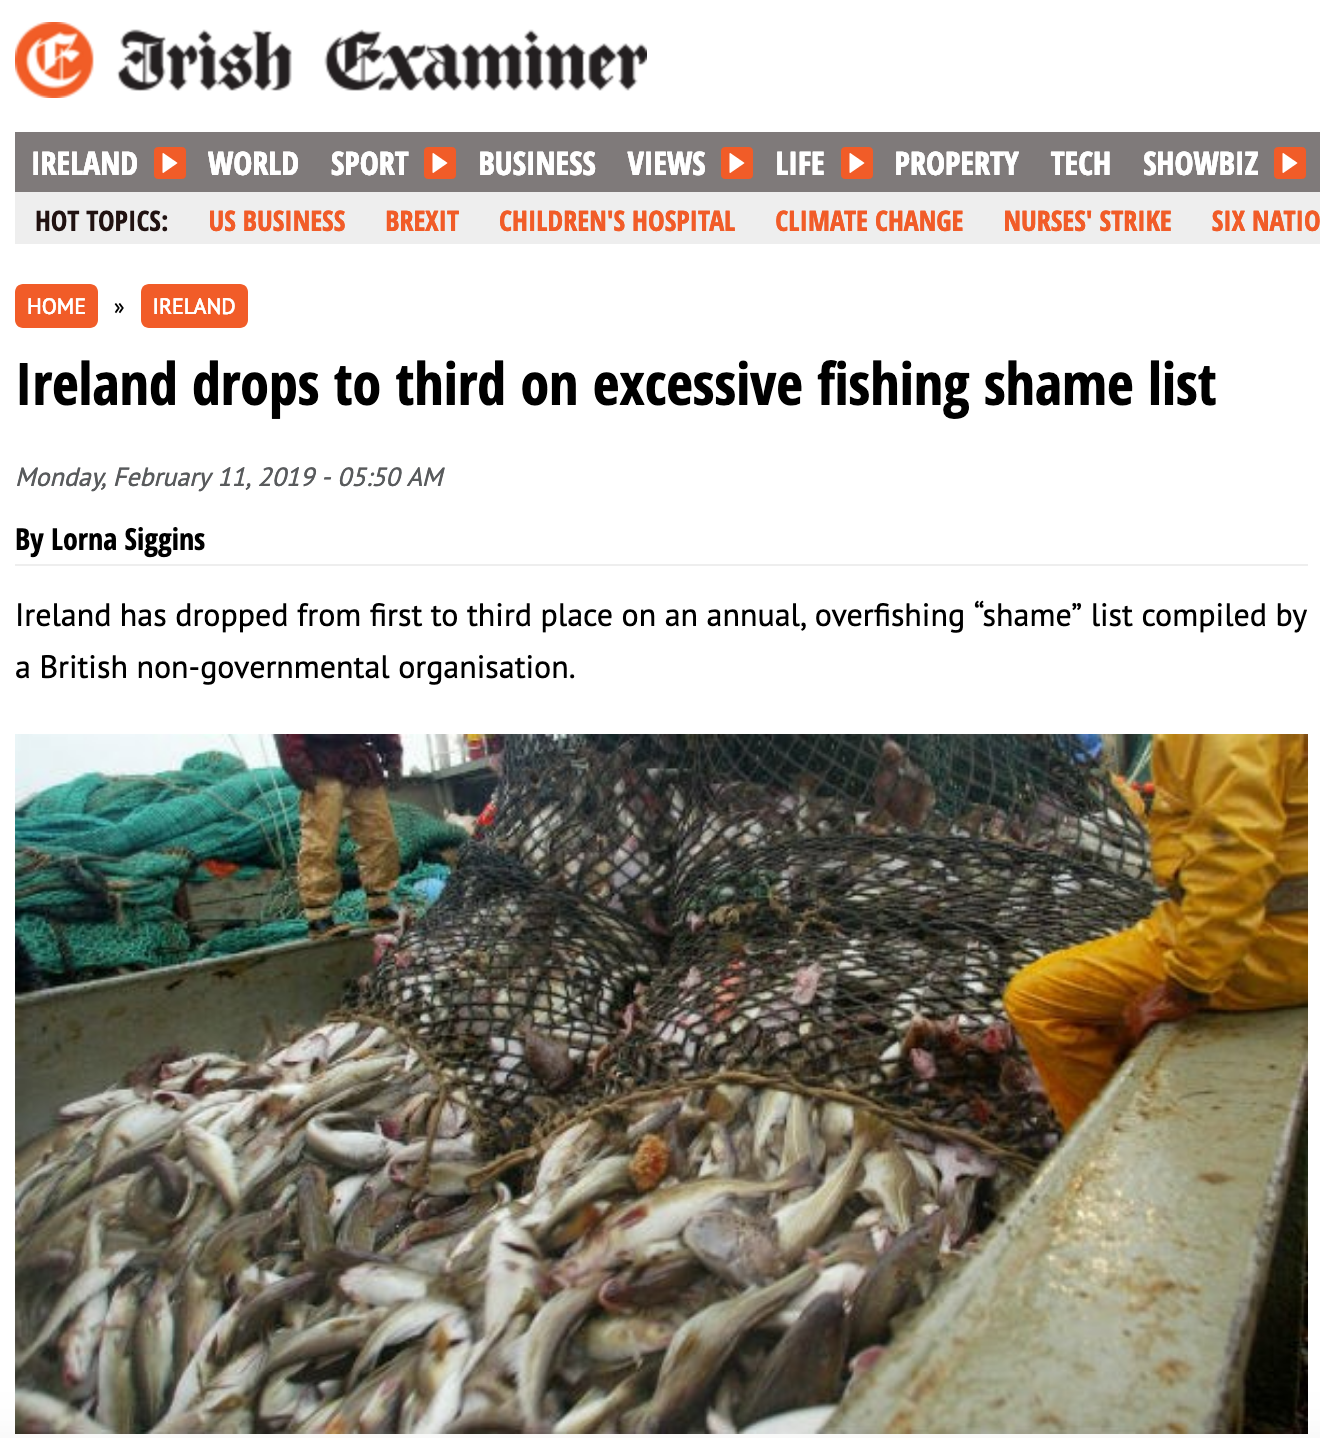 Irish Examiner: Ireland drops to third on excessive fishing shame list